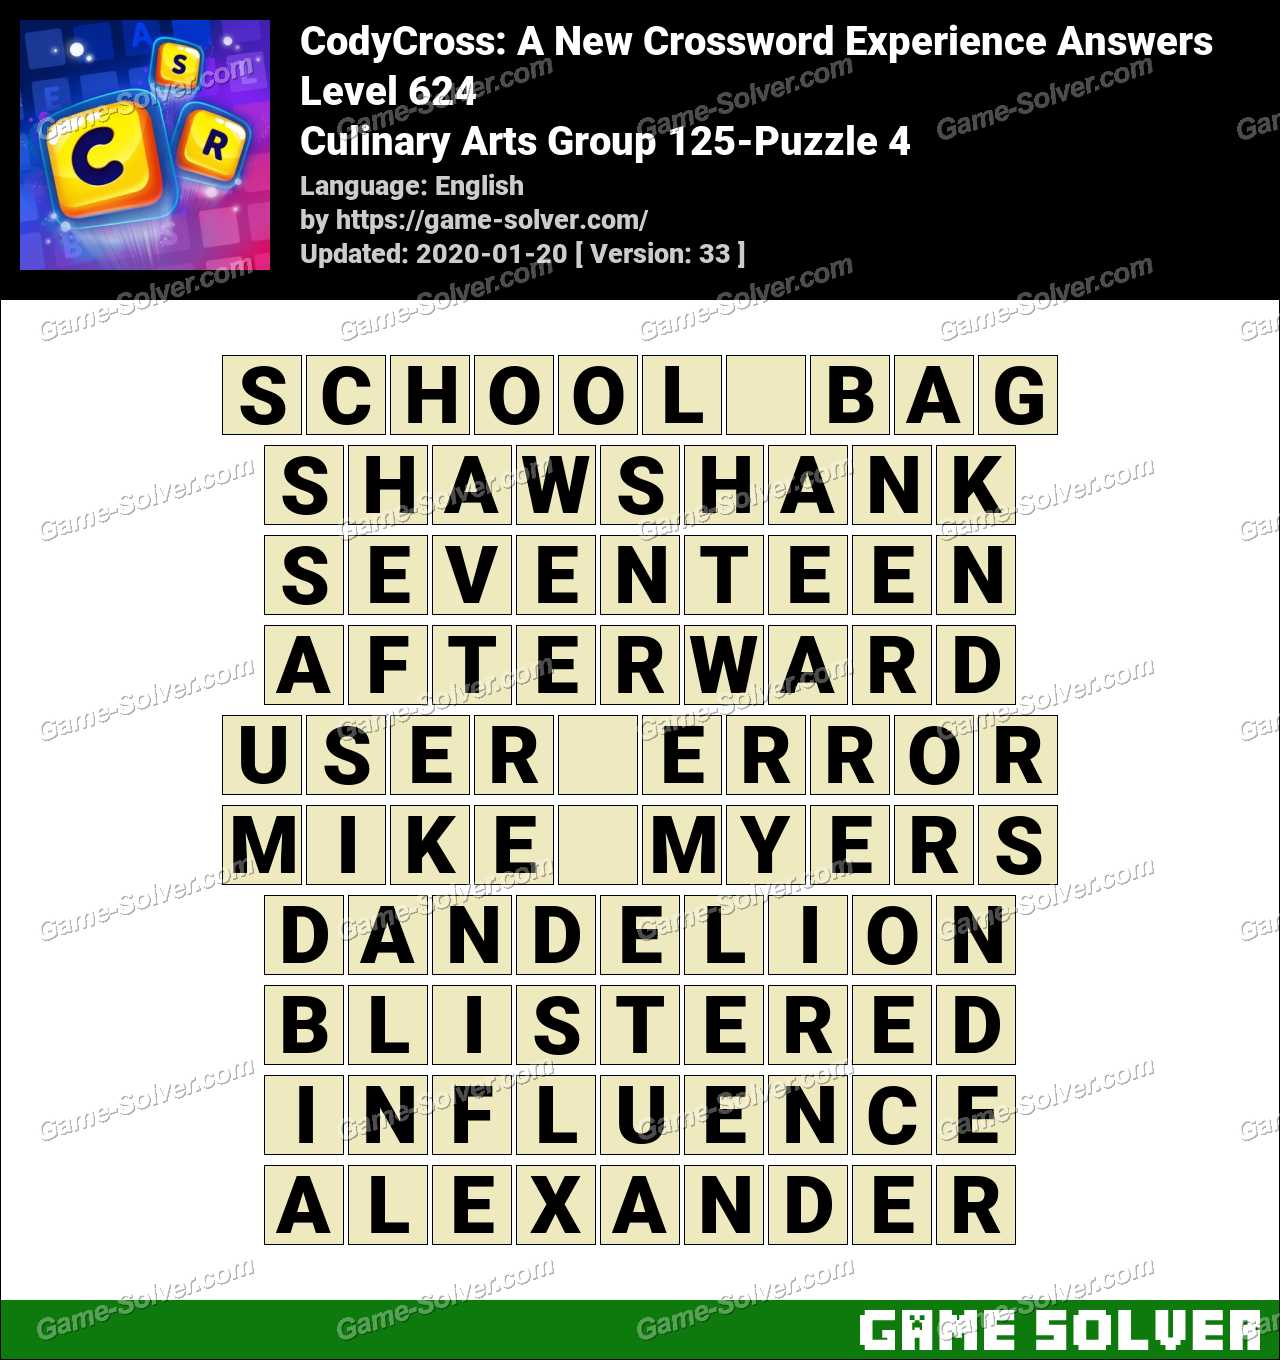 CodyCross Culinary Arts Group 125-Puzzle 4 Answers